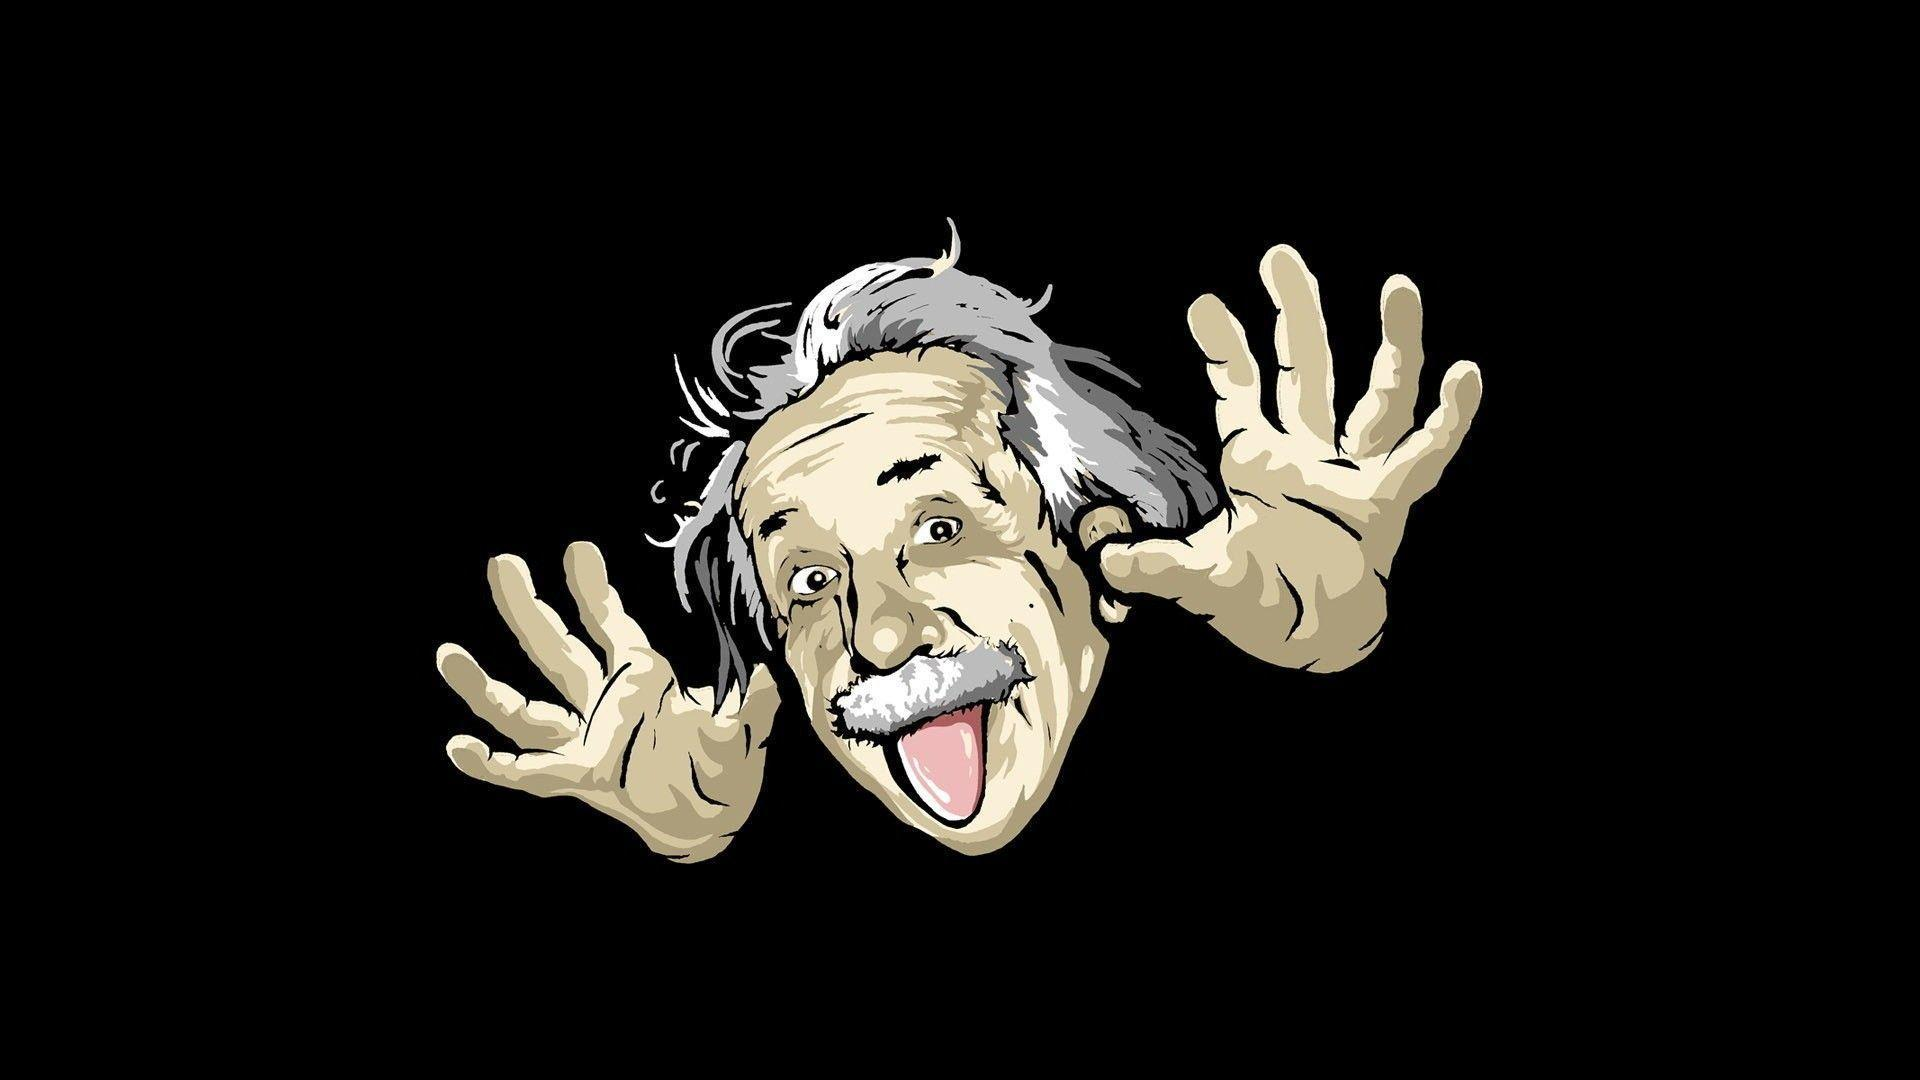 Albert Einstein Funny HD Wallpaper #4437 Wallpaper computer | best ...